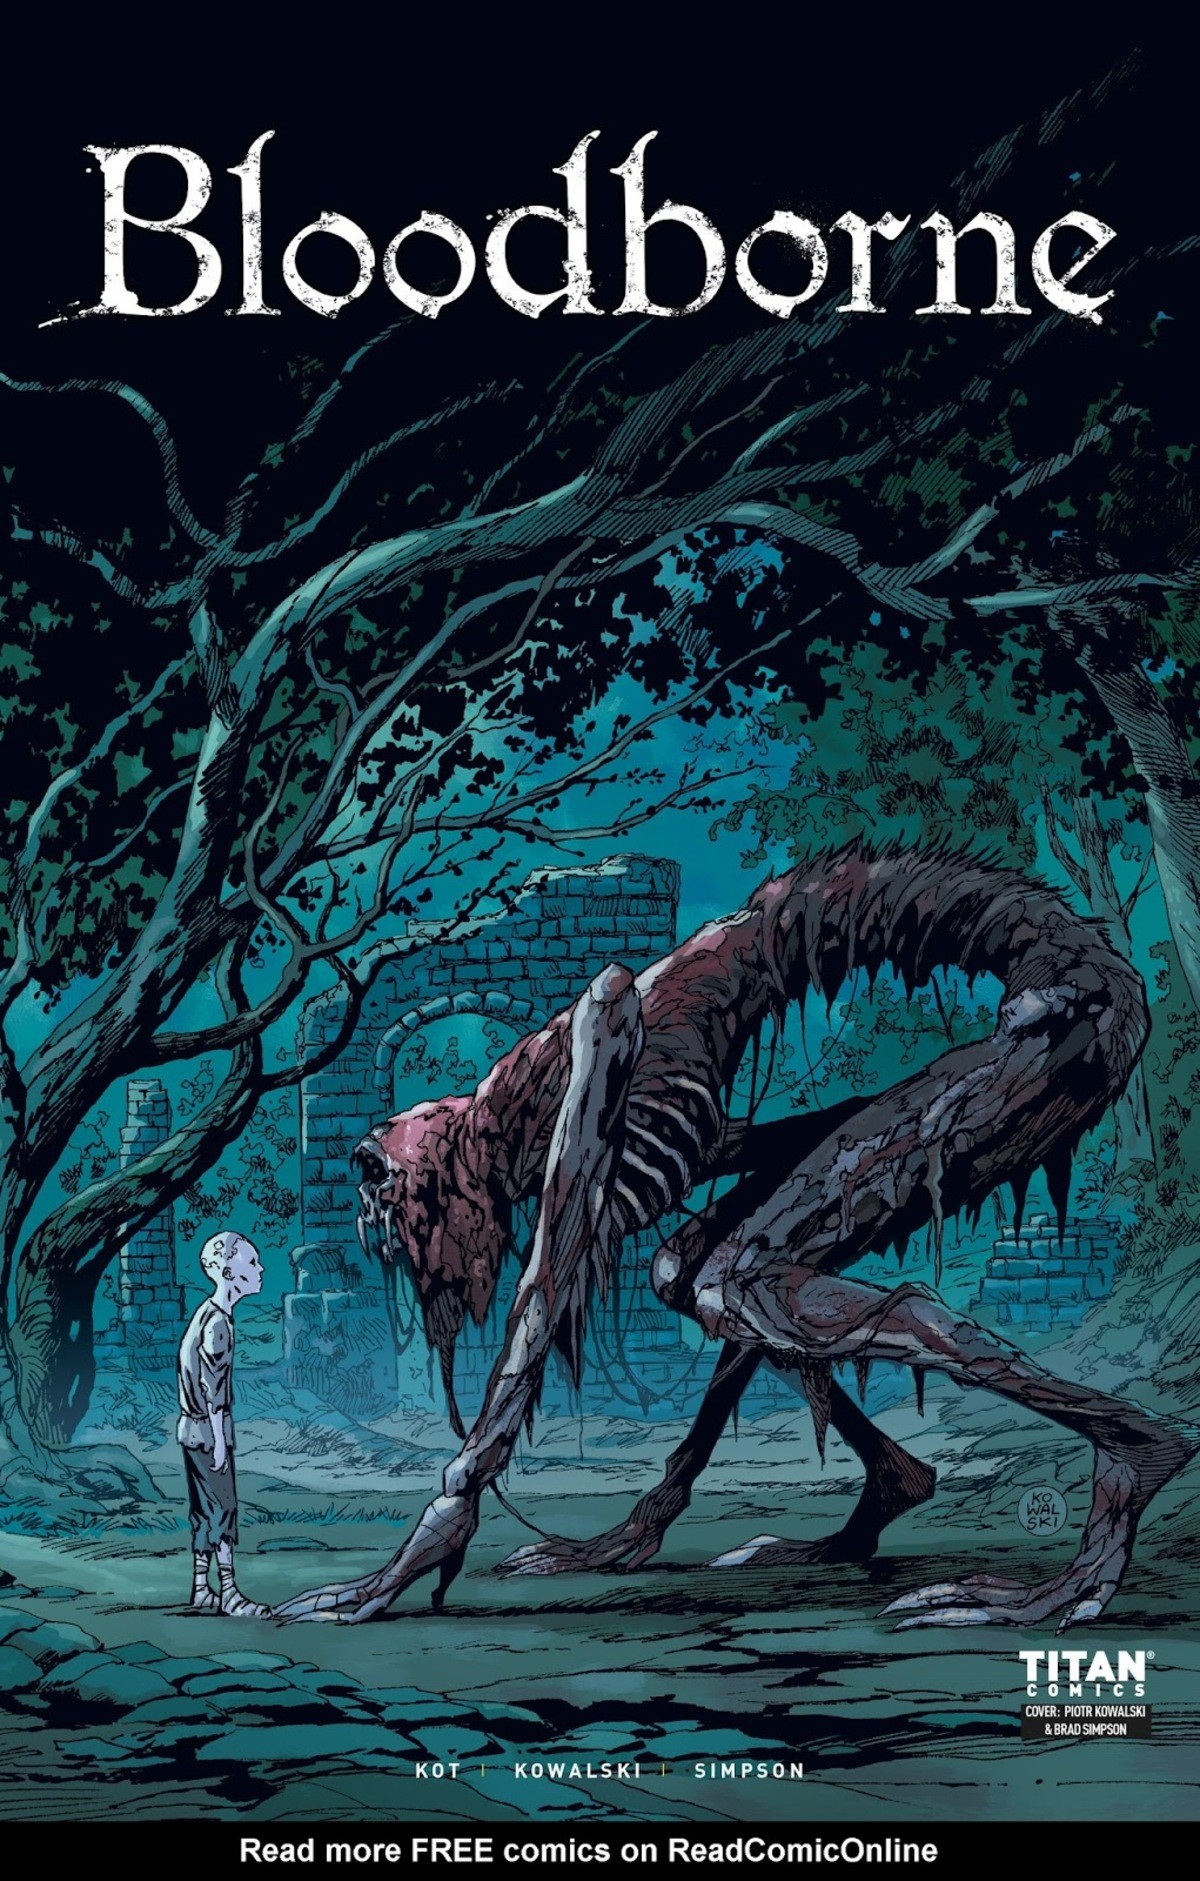 Bloodborne 3. Not much dialogue in this one. Questions raised, answers elusive, only the hunt is a sure thing.. TITAN my a KOWALSKI w SIMPSON Read more FREE com